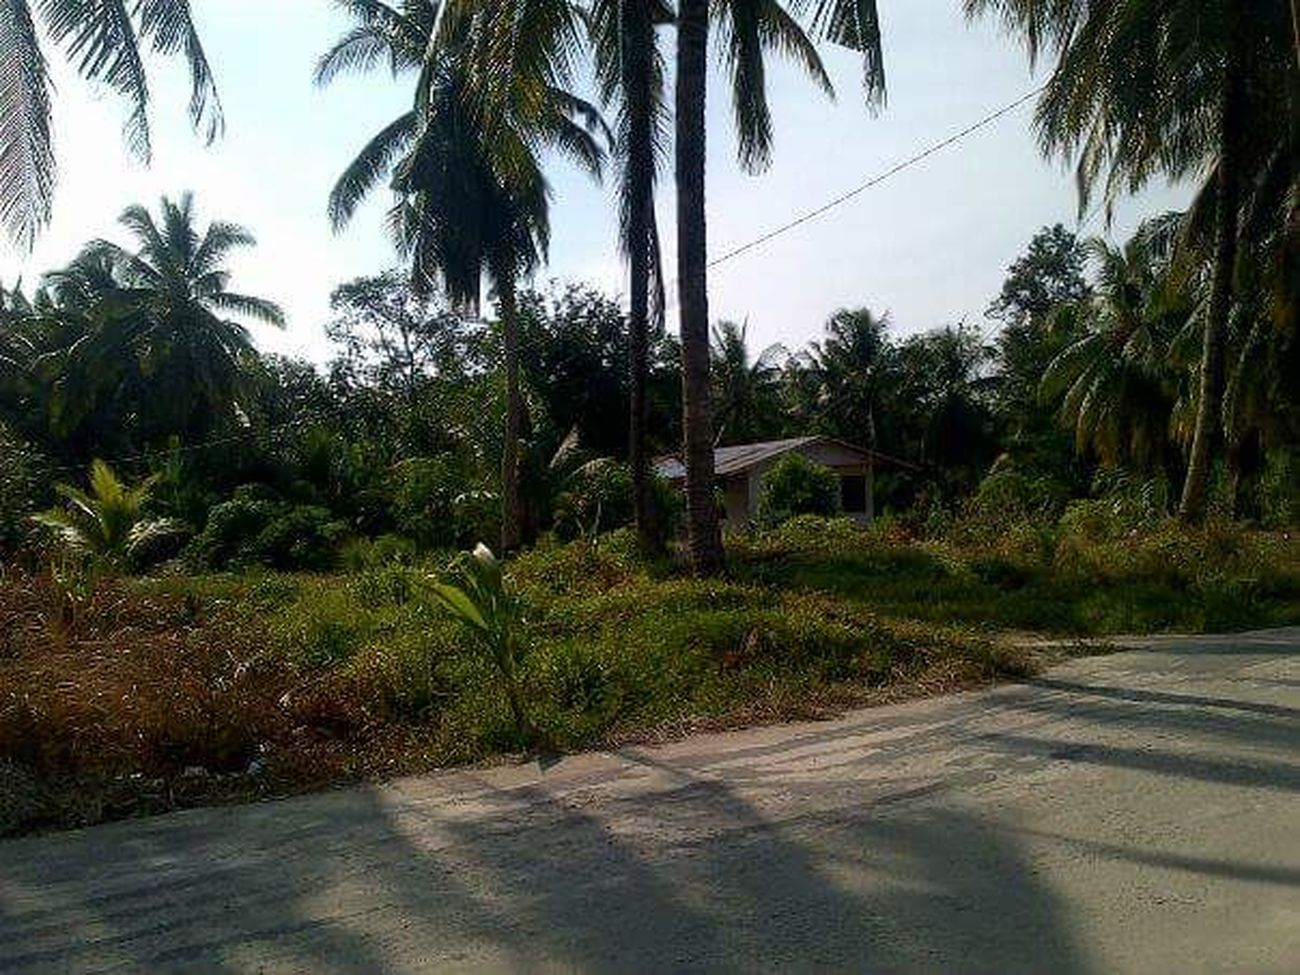 Village Rupatisland Coconut Trees Streetphotography Peace And Quiet